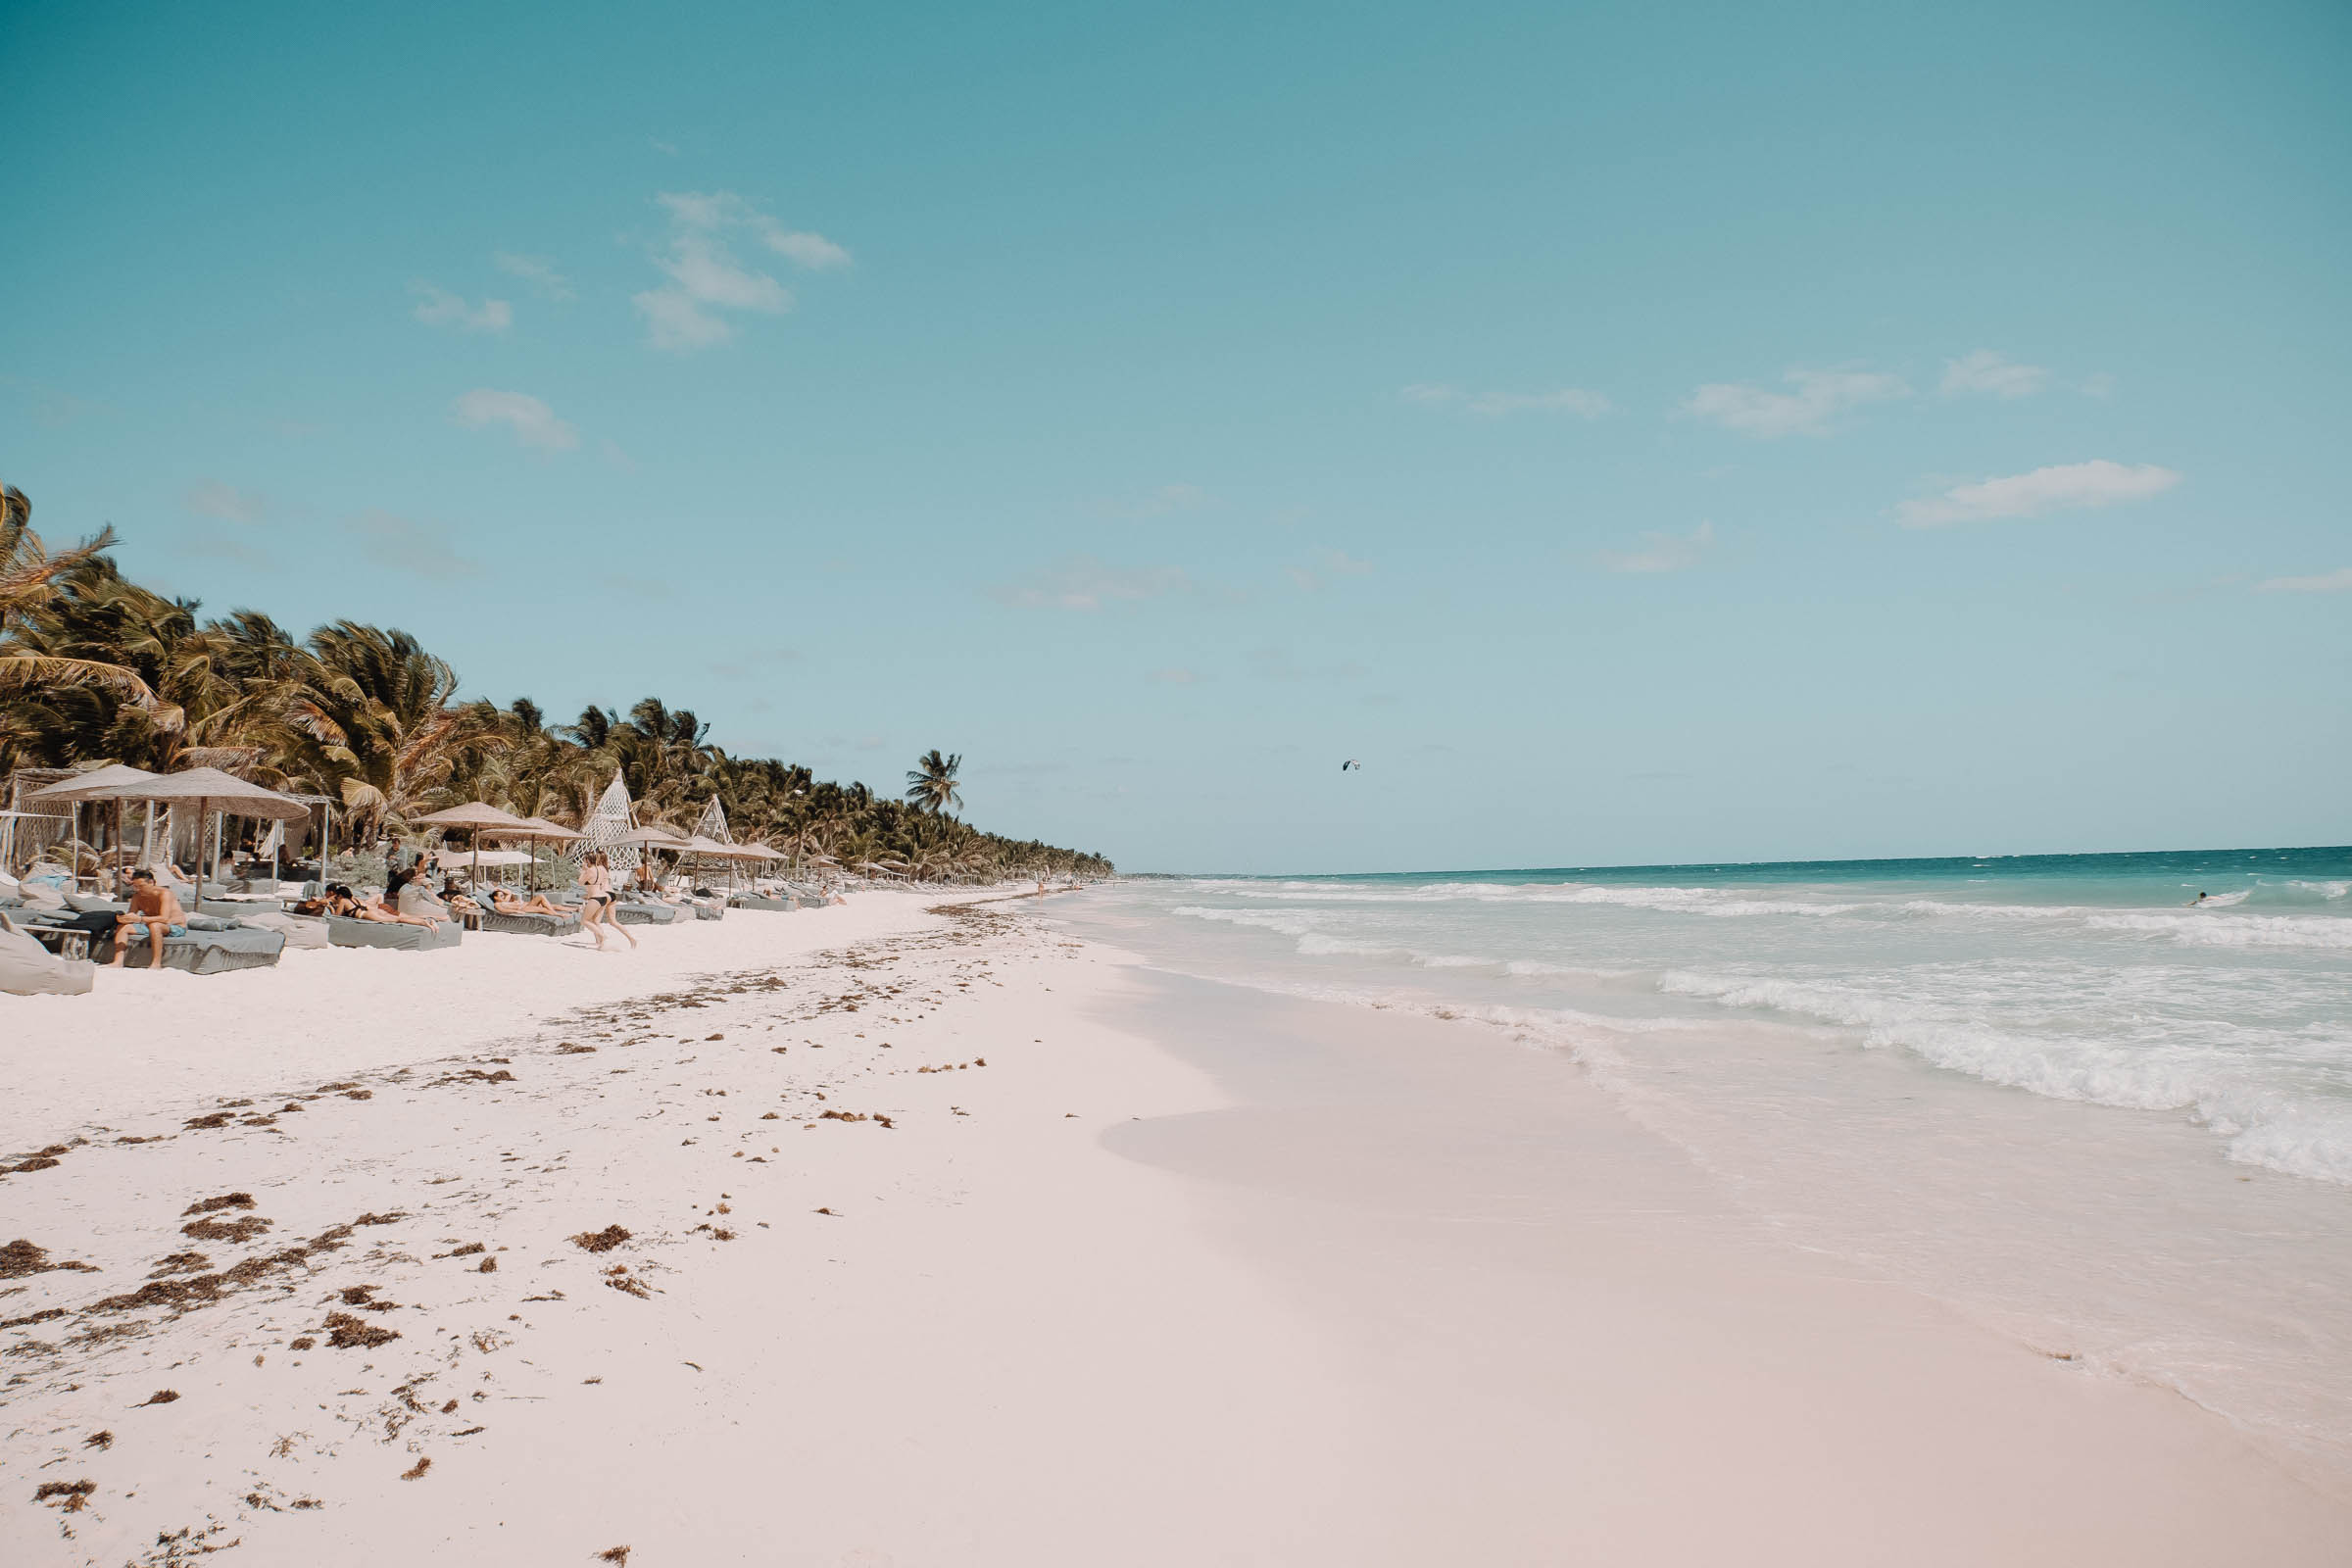 Chacon Images_Mexico2019_Web-59.jpg